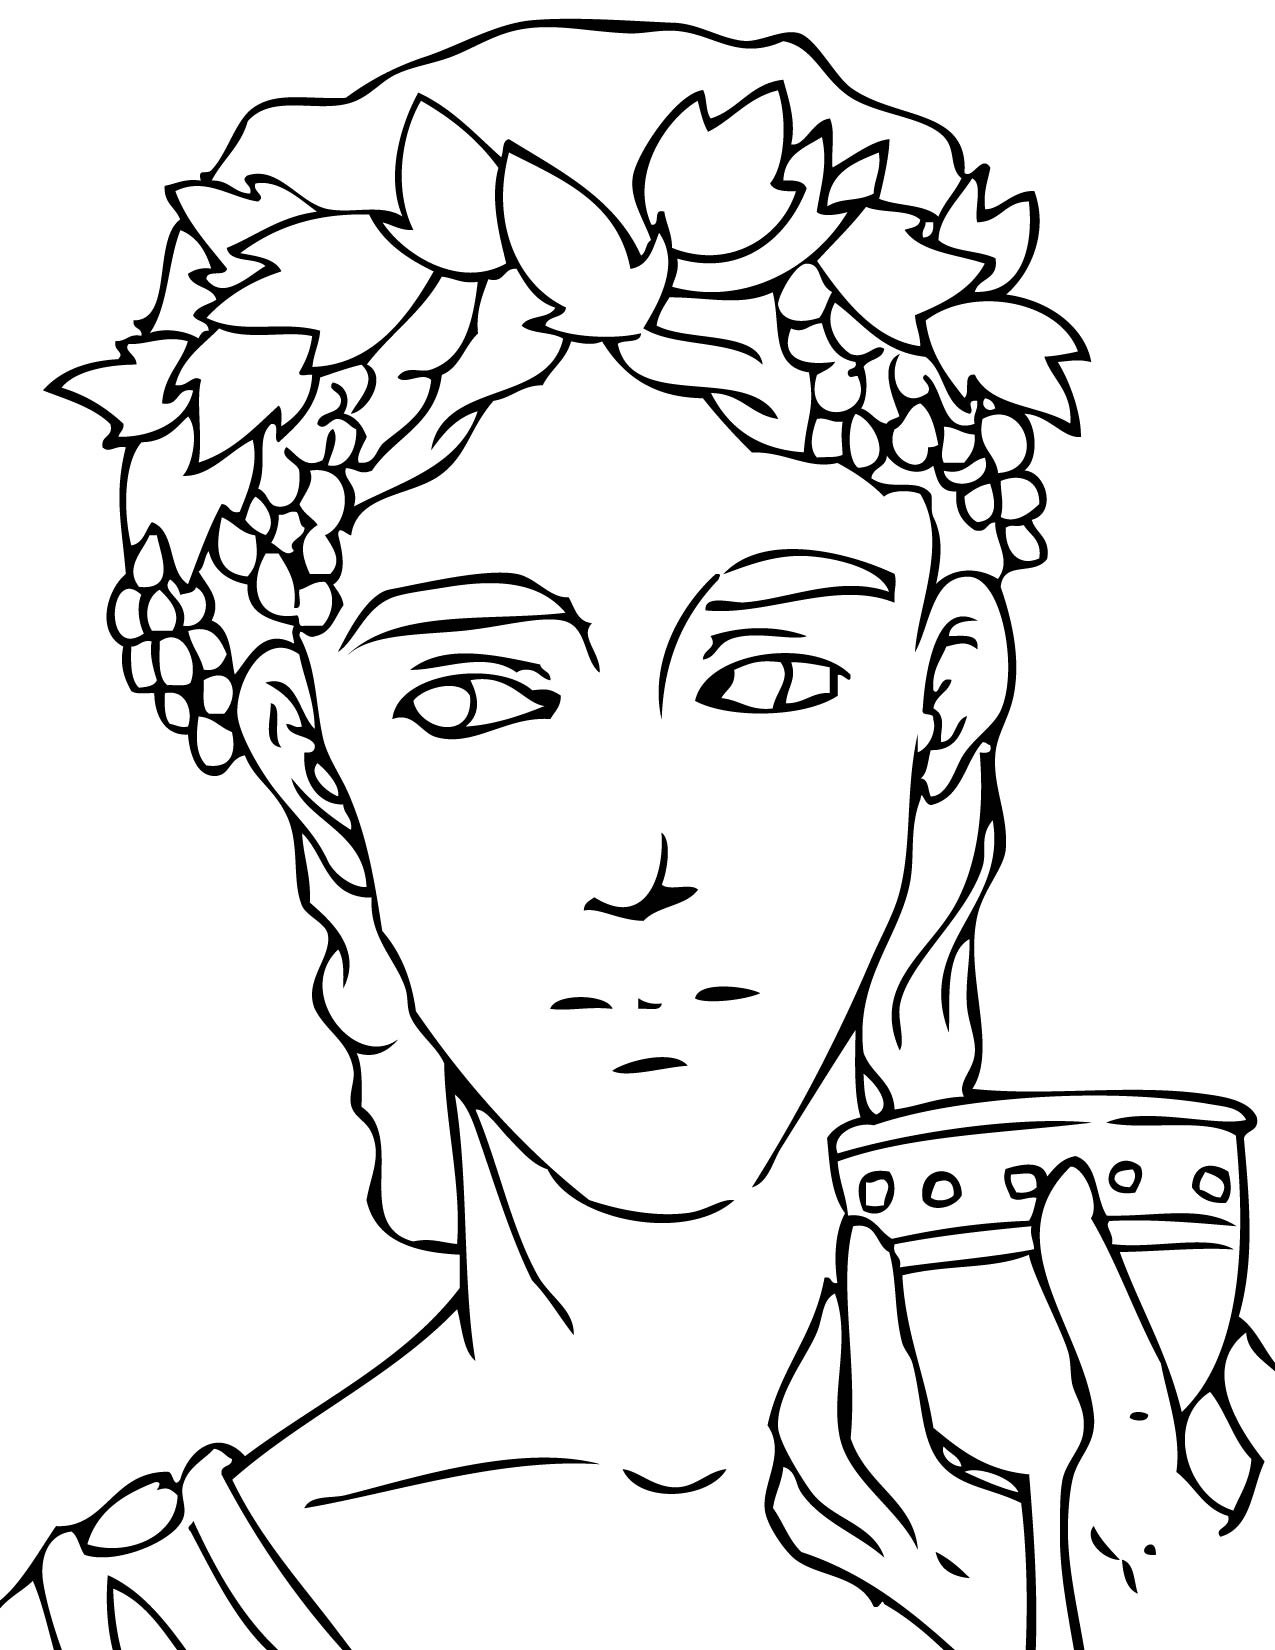 similiar greek gods coloring pages keywords